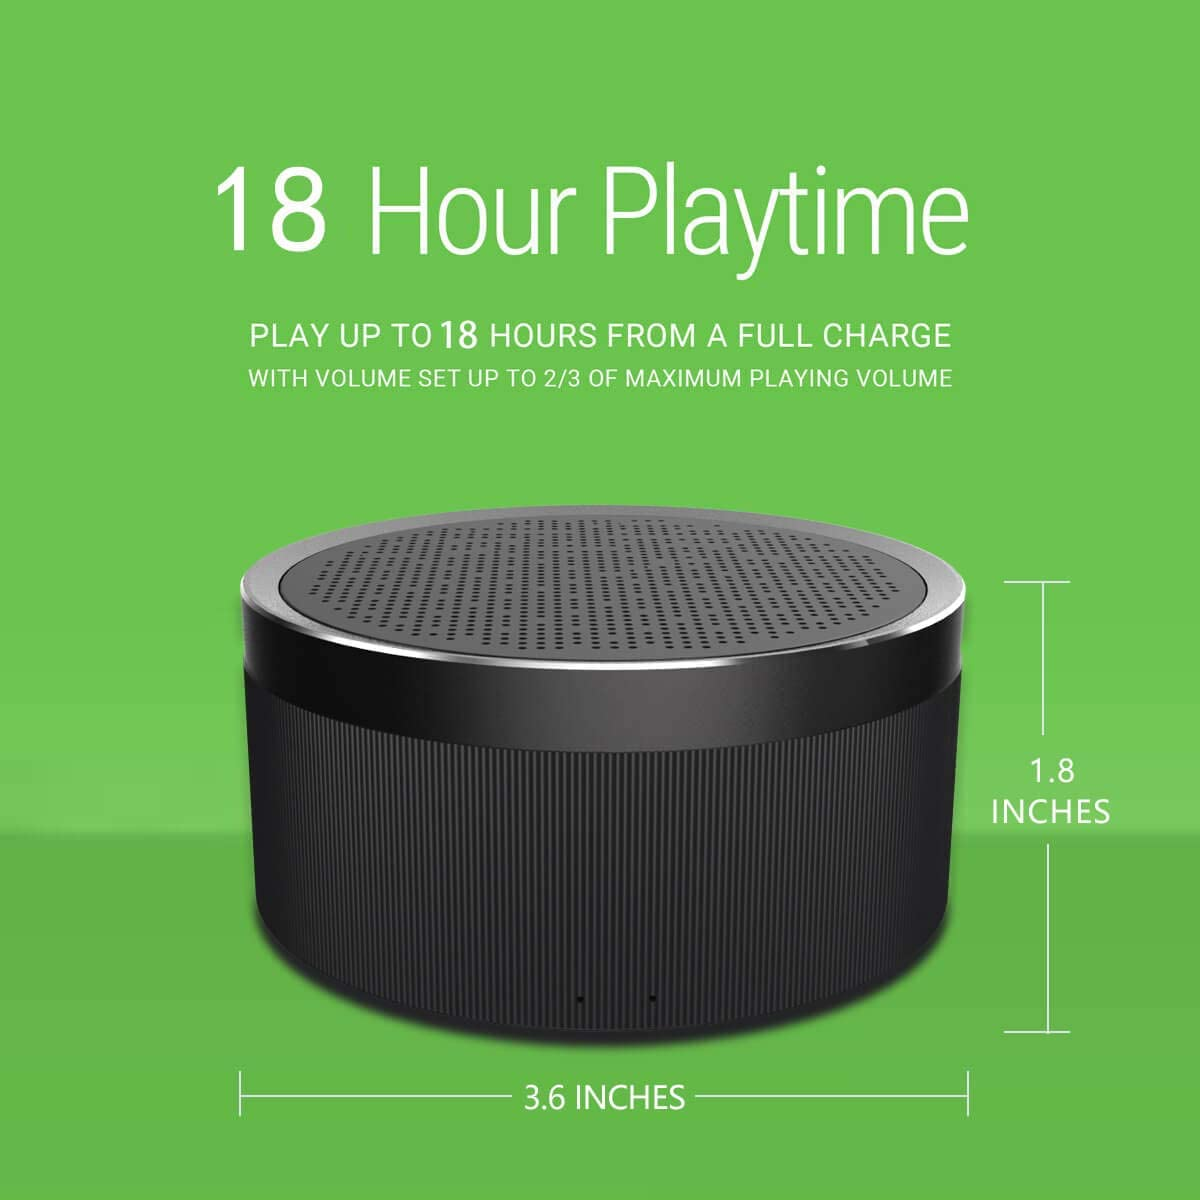 Bluetooth Speaker V4.2, LENRUE Portable Wireless Speaker with HD Sound, 18-Hour Playtime, Built-in Mic, Micro SD Support for iPhone, iPad, Laptop, Samsung and Echo dot Black